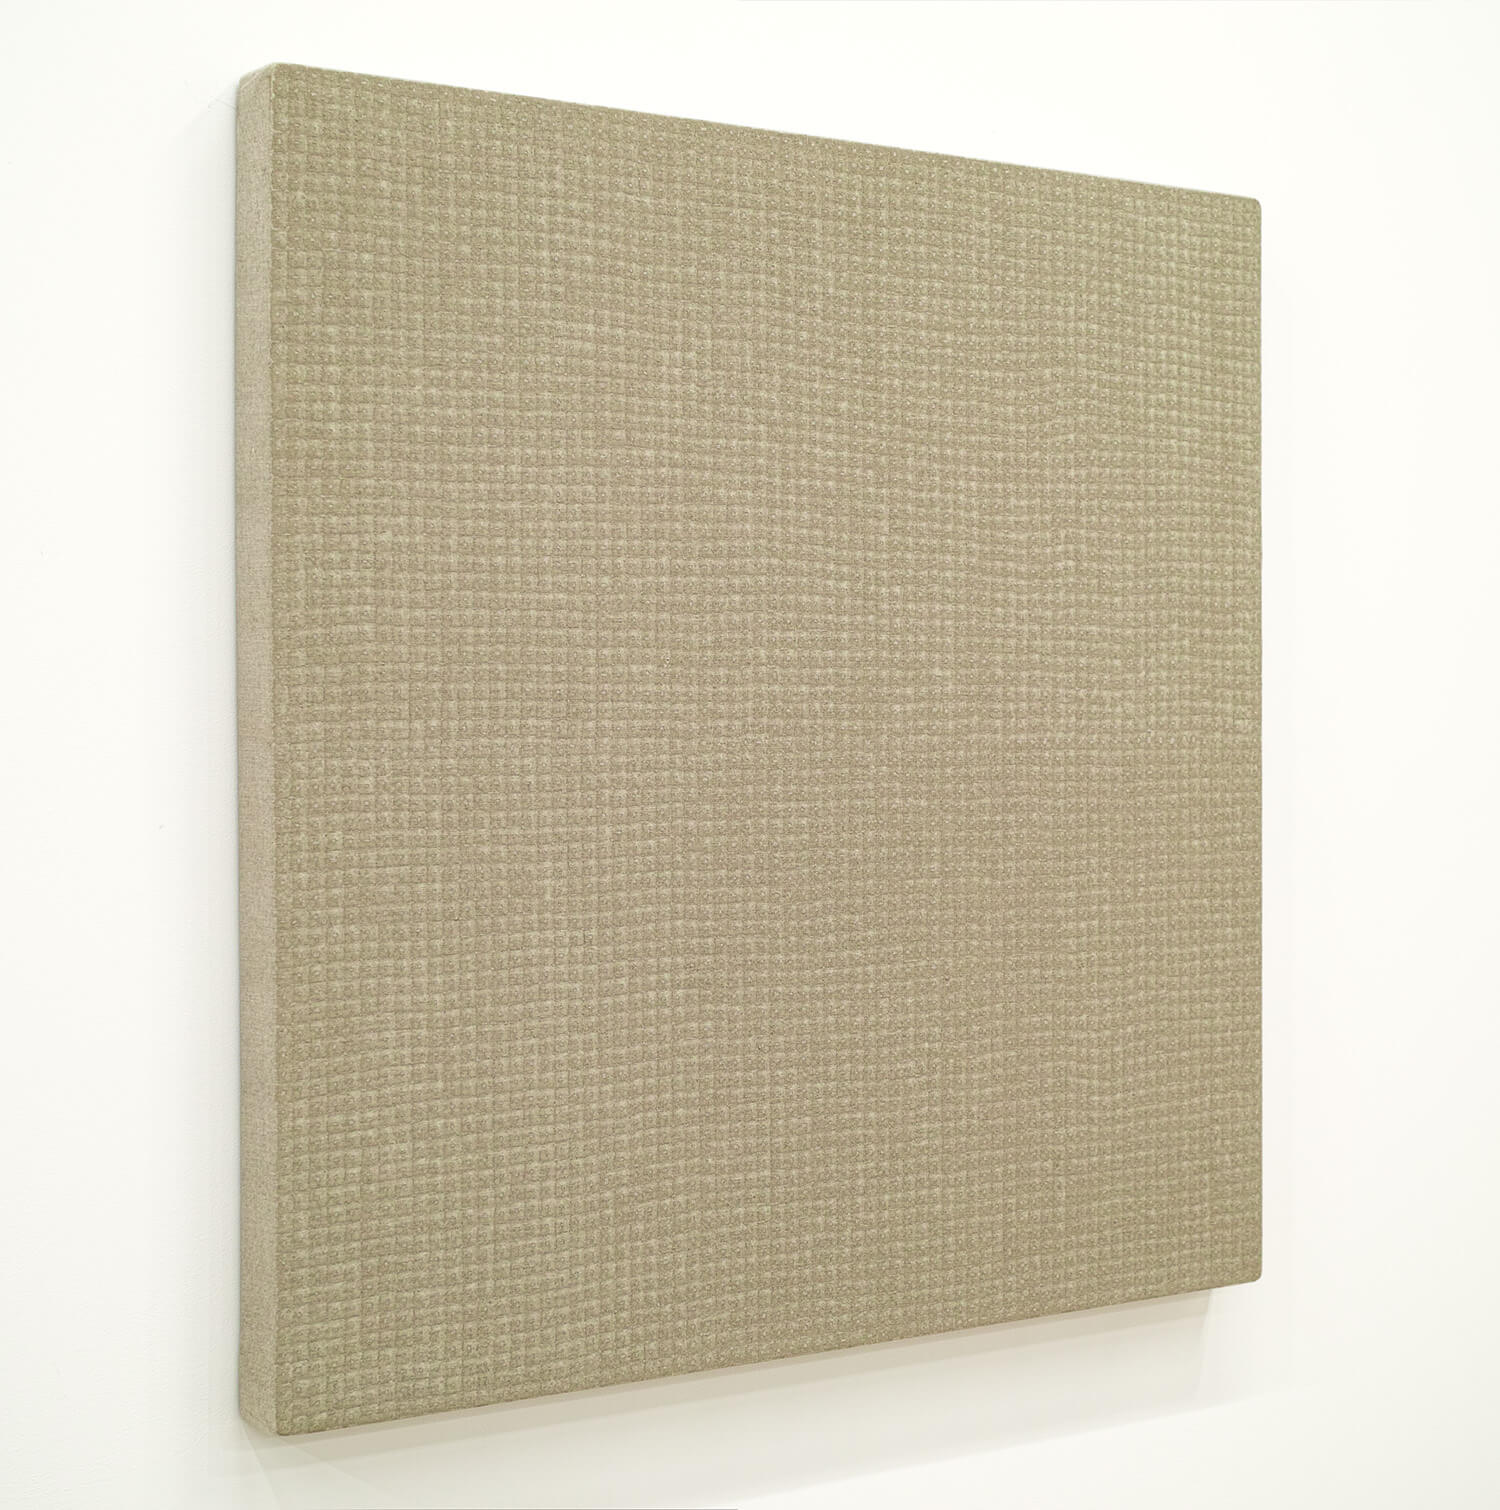 川井昭夫|麻布-square 09-1 Acrylic on canvas|72.5 x 72.5 cm|2009